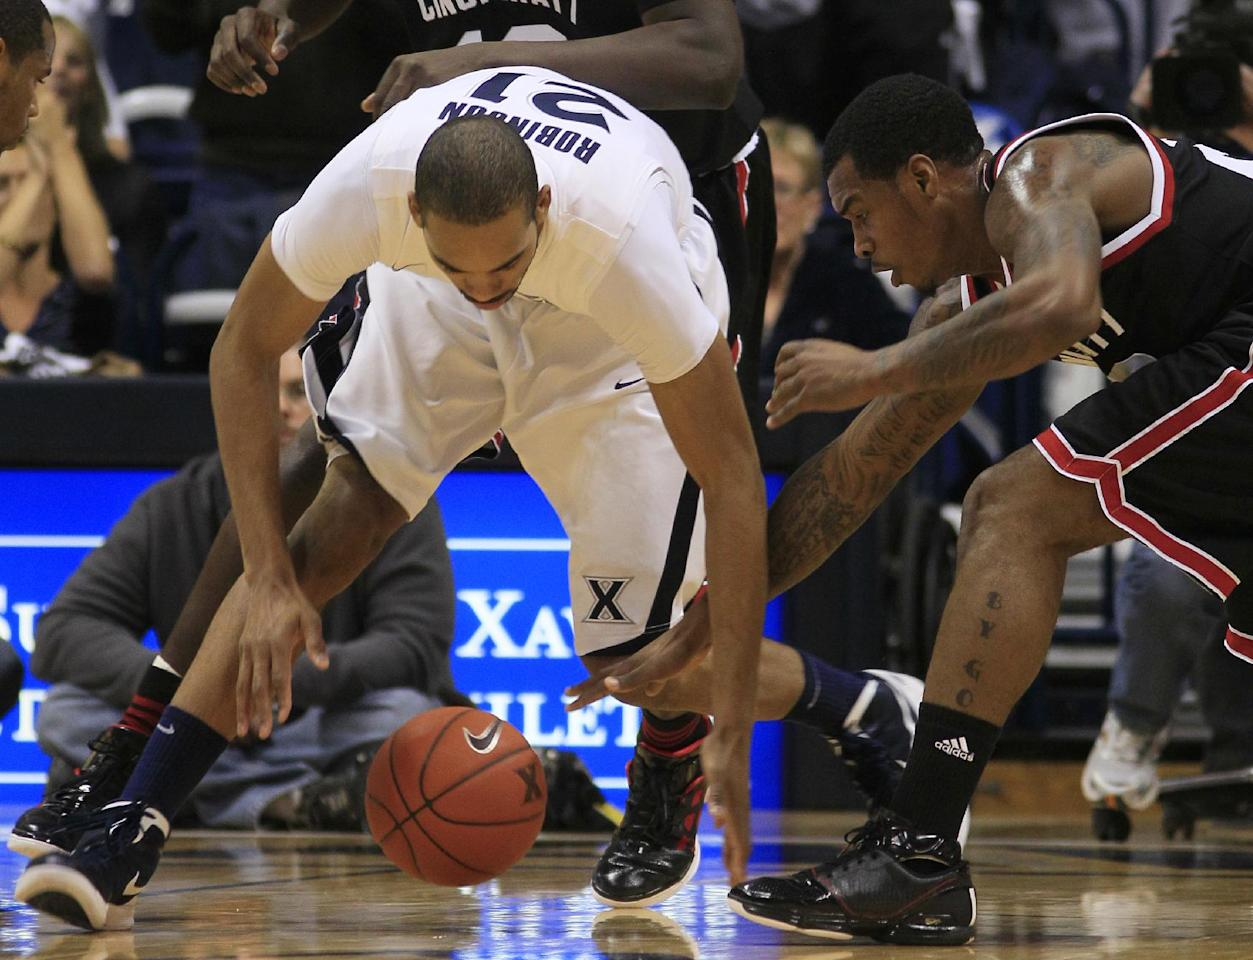 Cincinnati guard Sean Kilpatrick, right, chases a loose ball against Xavier forward Jeff Robinson (21) in the first half of an NCAA college basketball game, Saturday, Dec. 10, 2011, in Cincinnati. (AP Photo/Al Behrman)